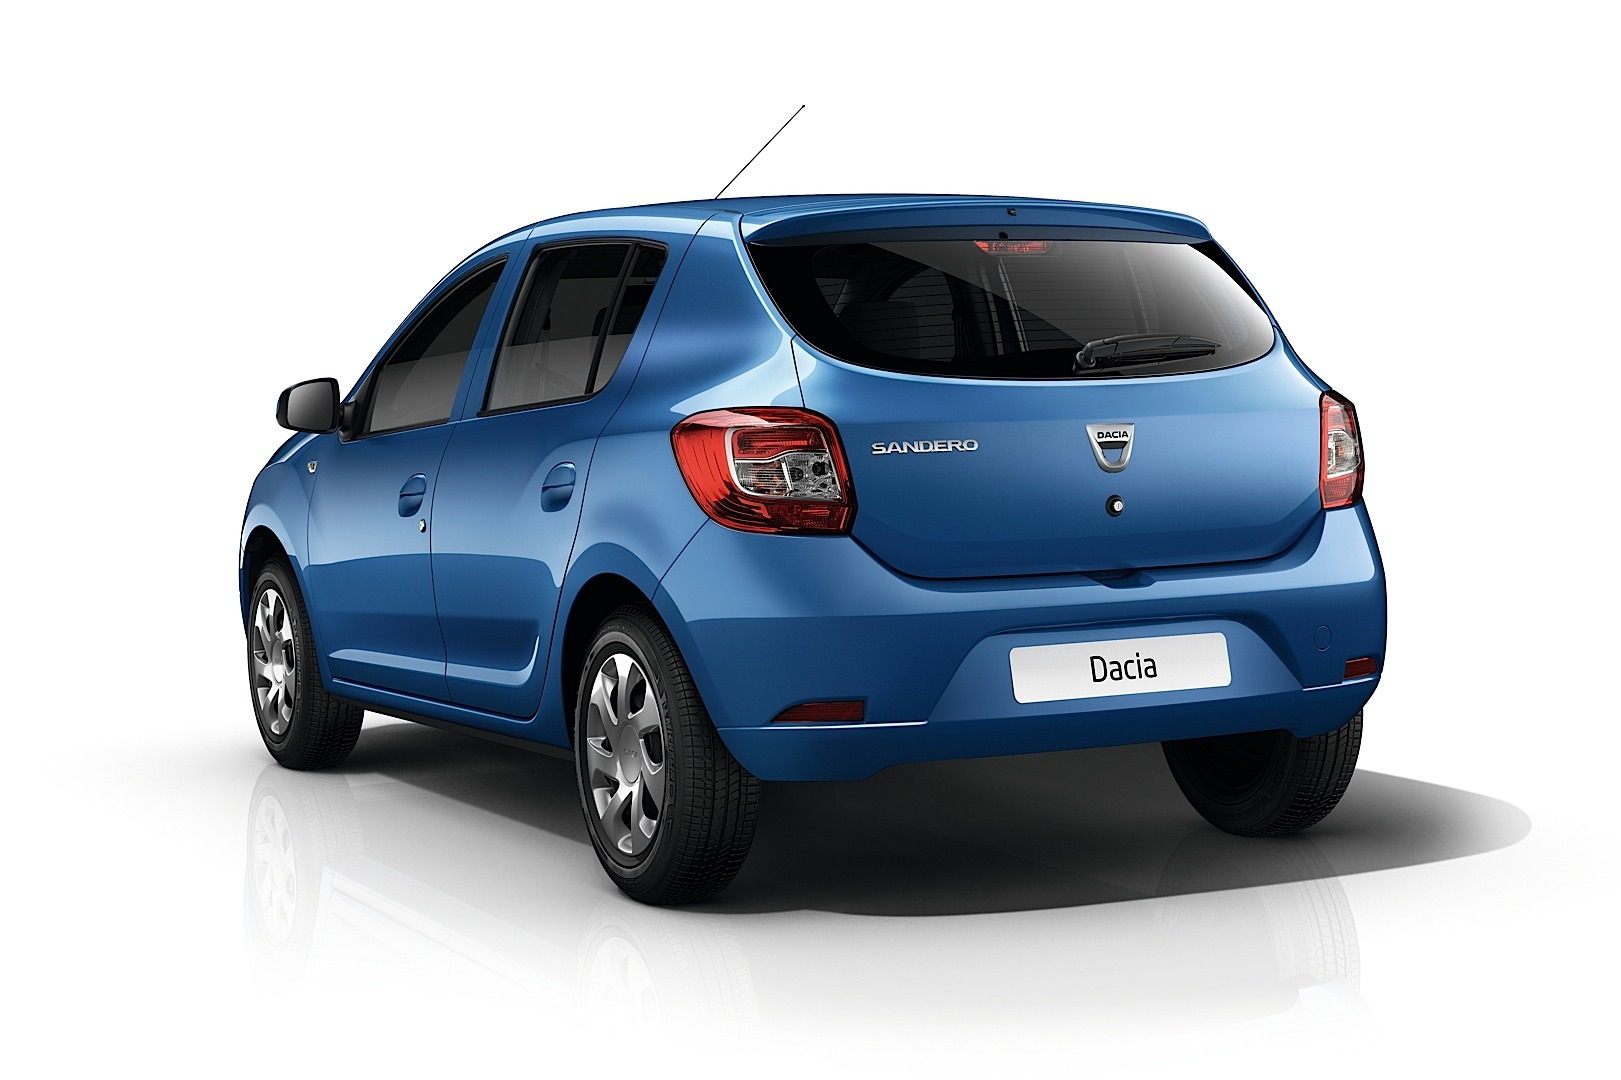 New Dacia Logan And Sandero Photos Be e Official Photo Gallery 49569 on kia logo